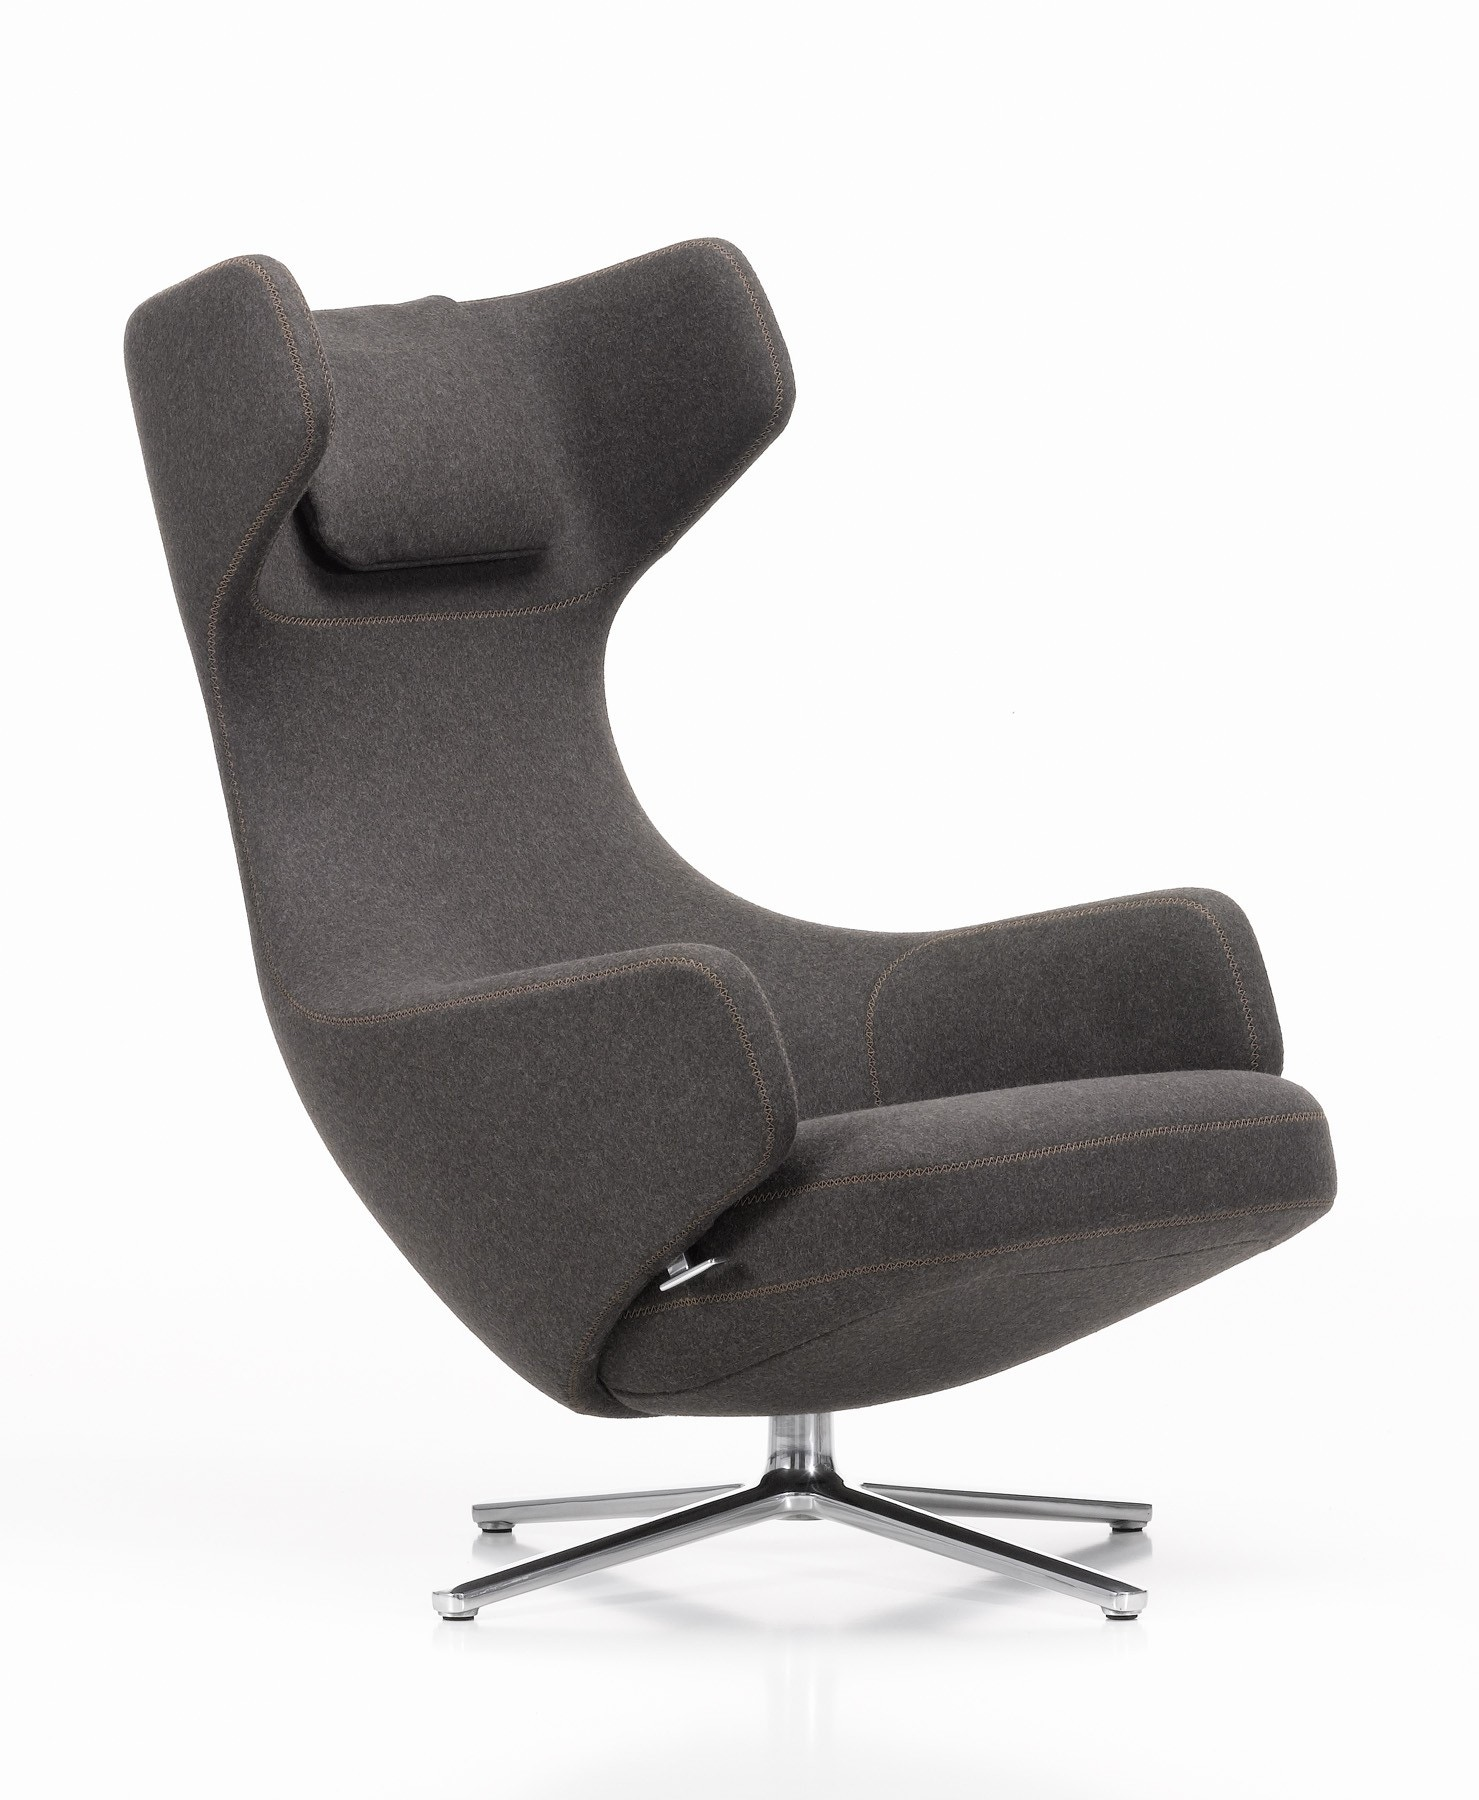 Magnificent Vitra Grand Repos Lounge Chair Inzonedesignstudio Interior Chair Design Inzonedesignstudiocom